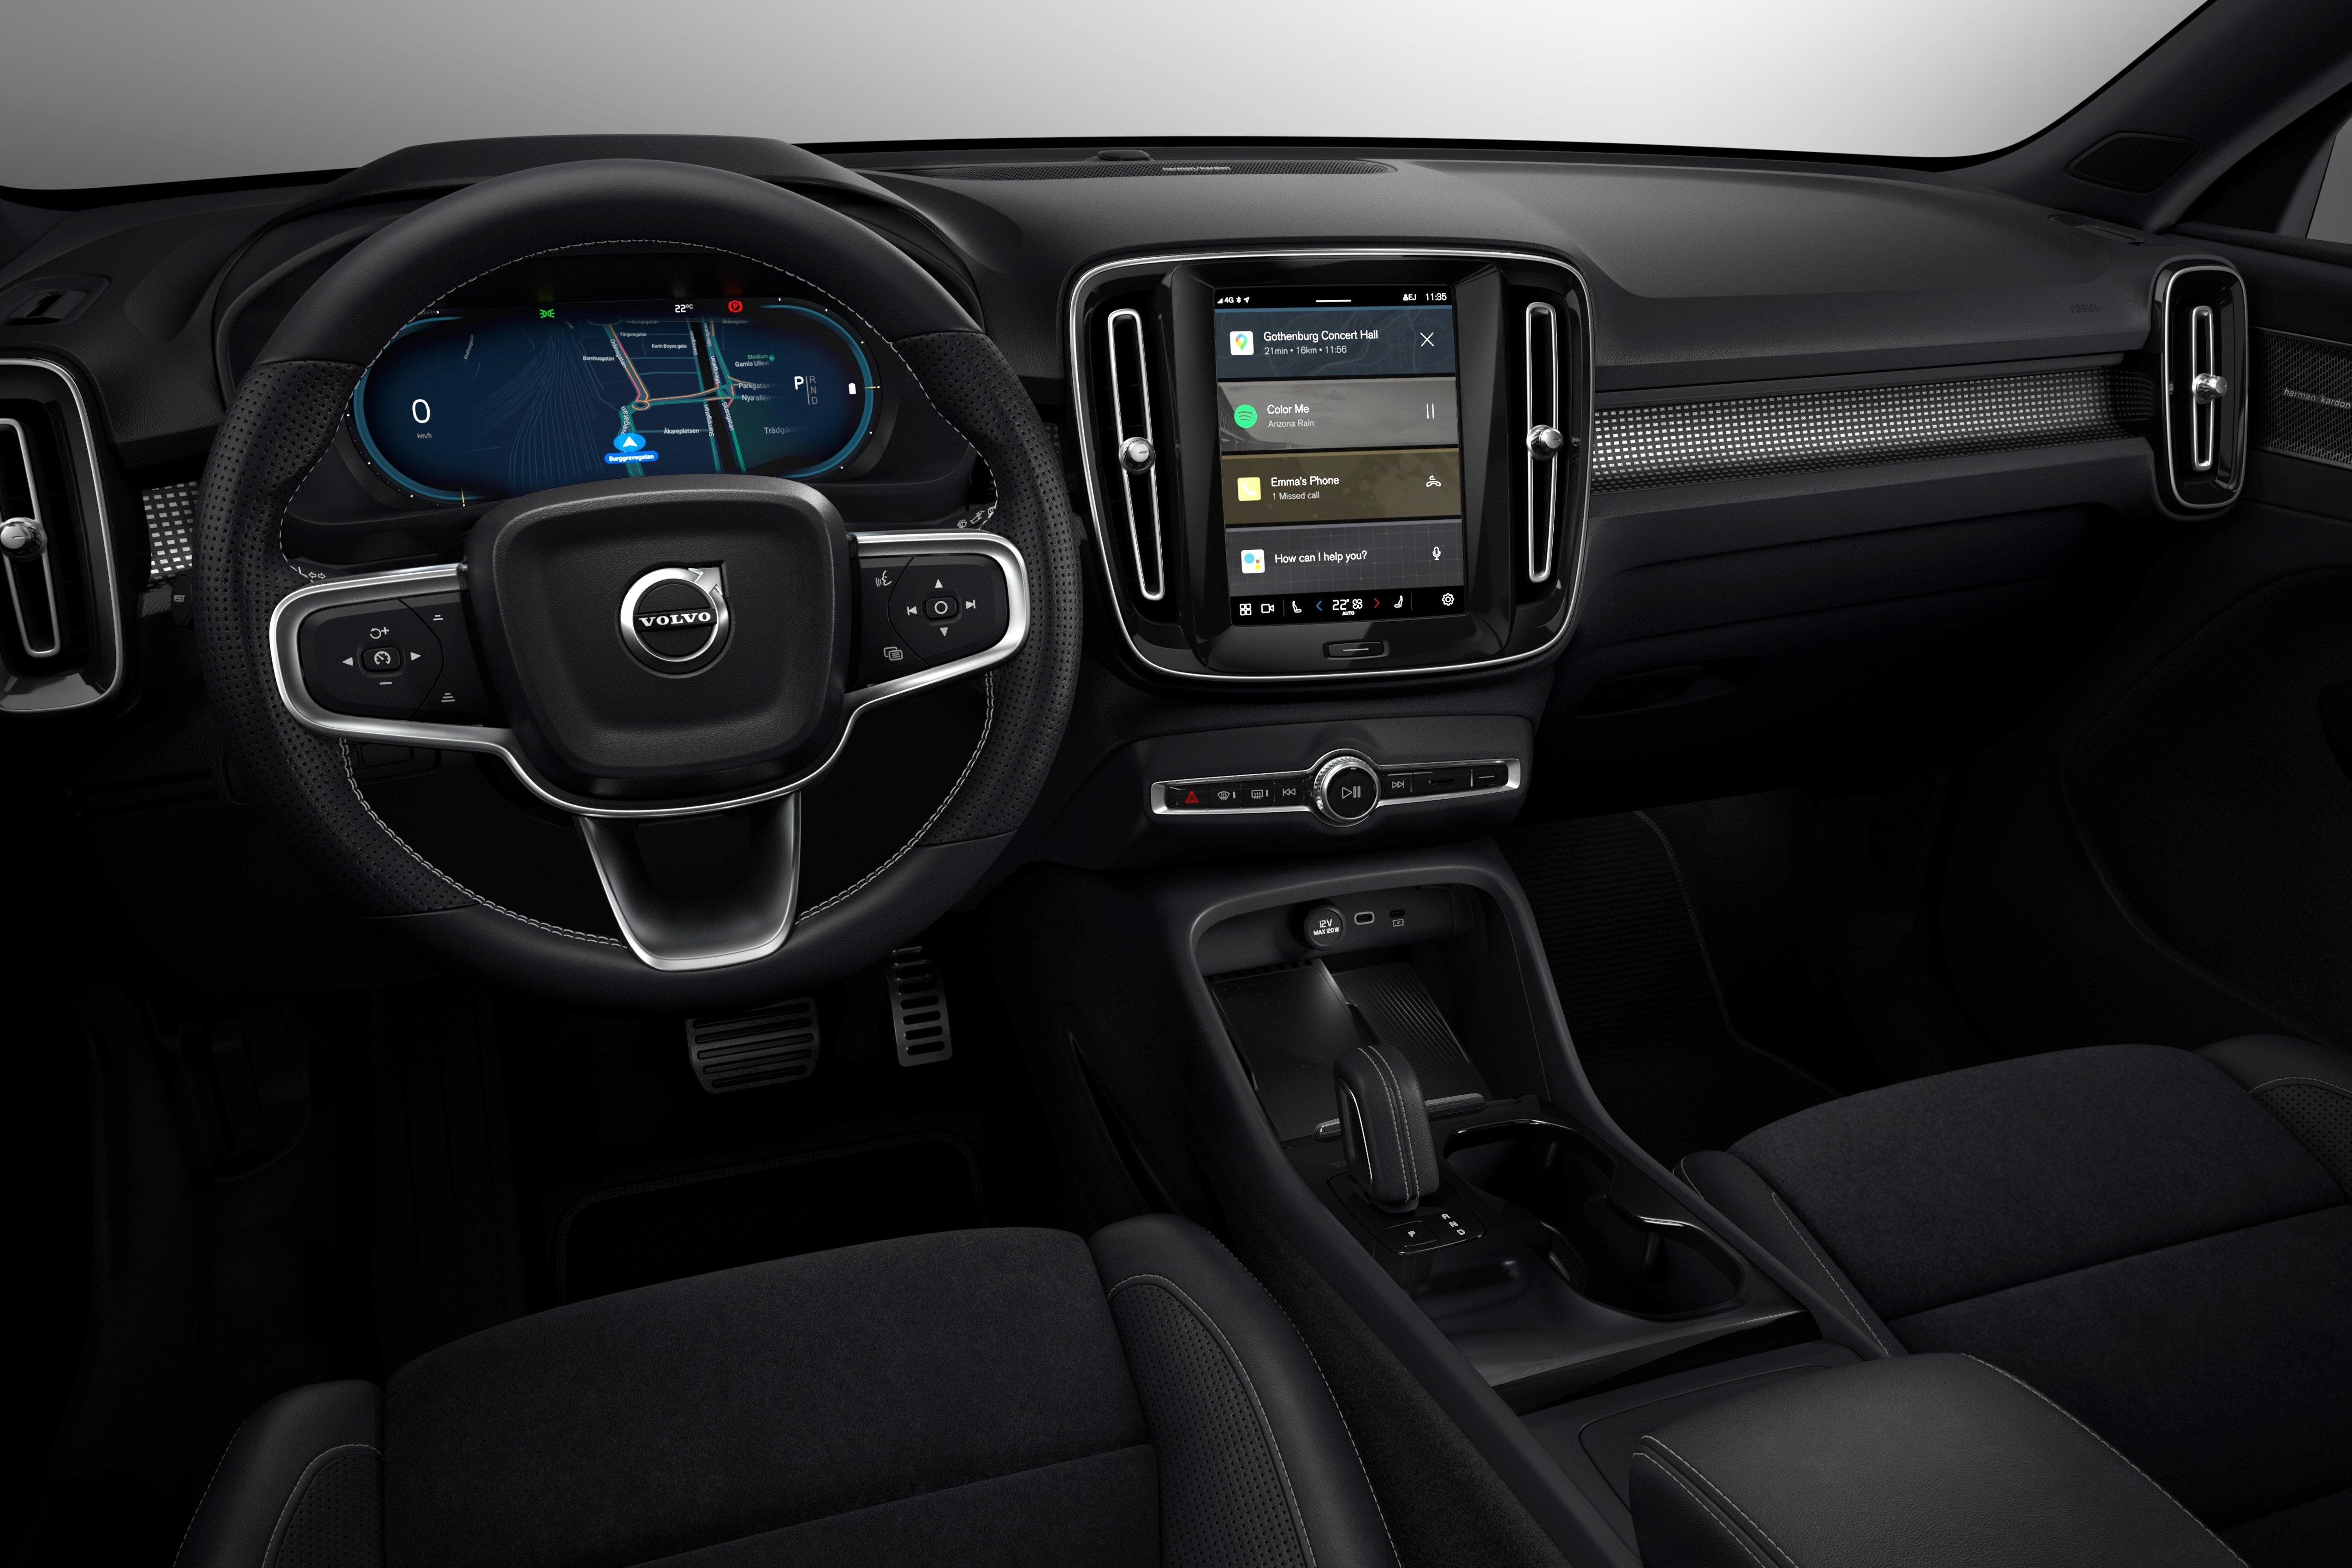 Volvo Cars safety experts say: use technology to support drivers and reduce distraction